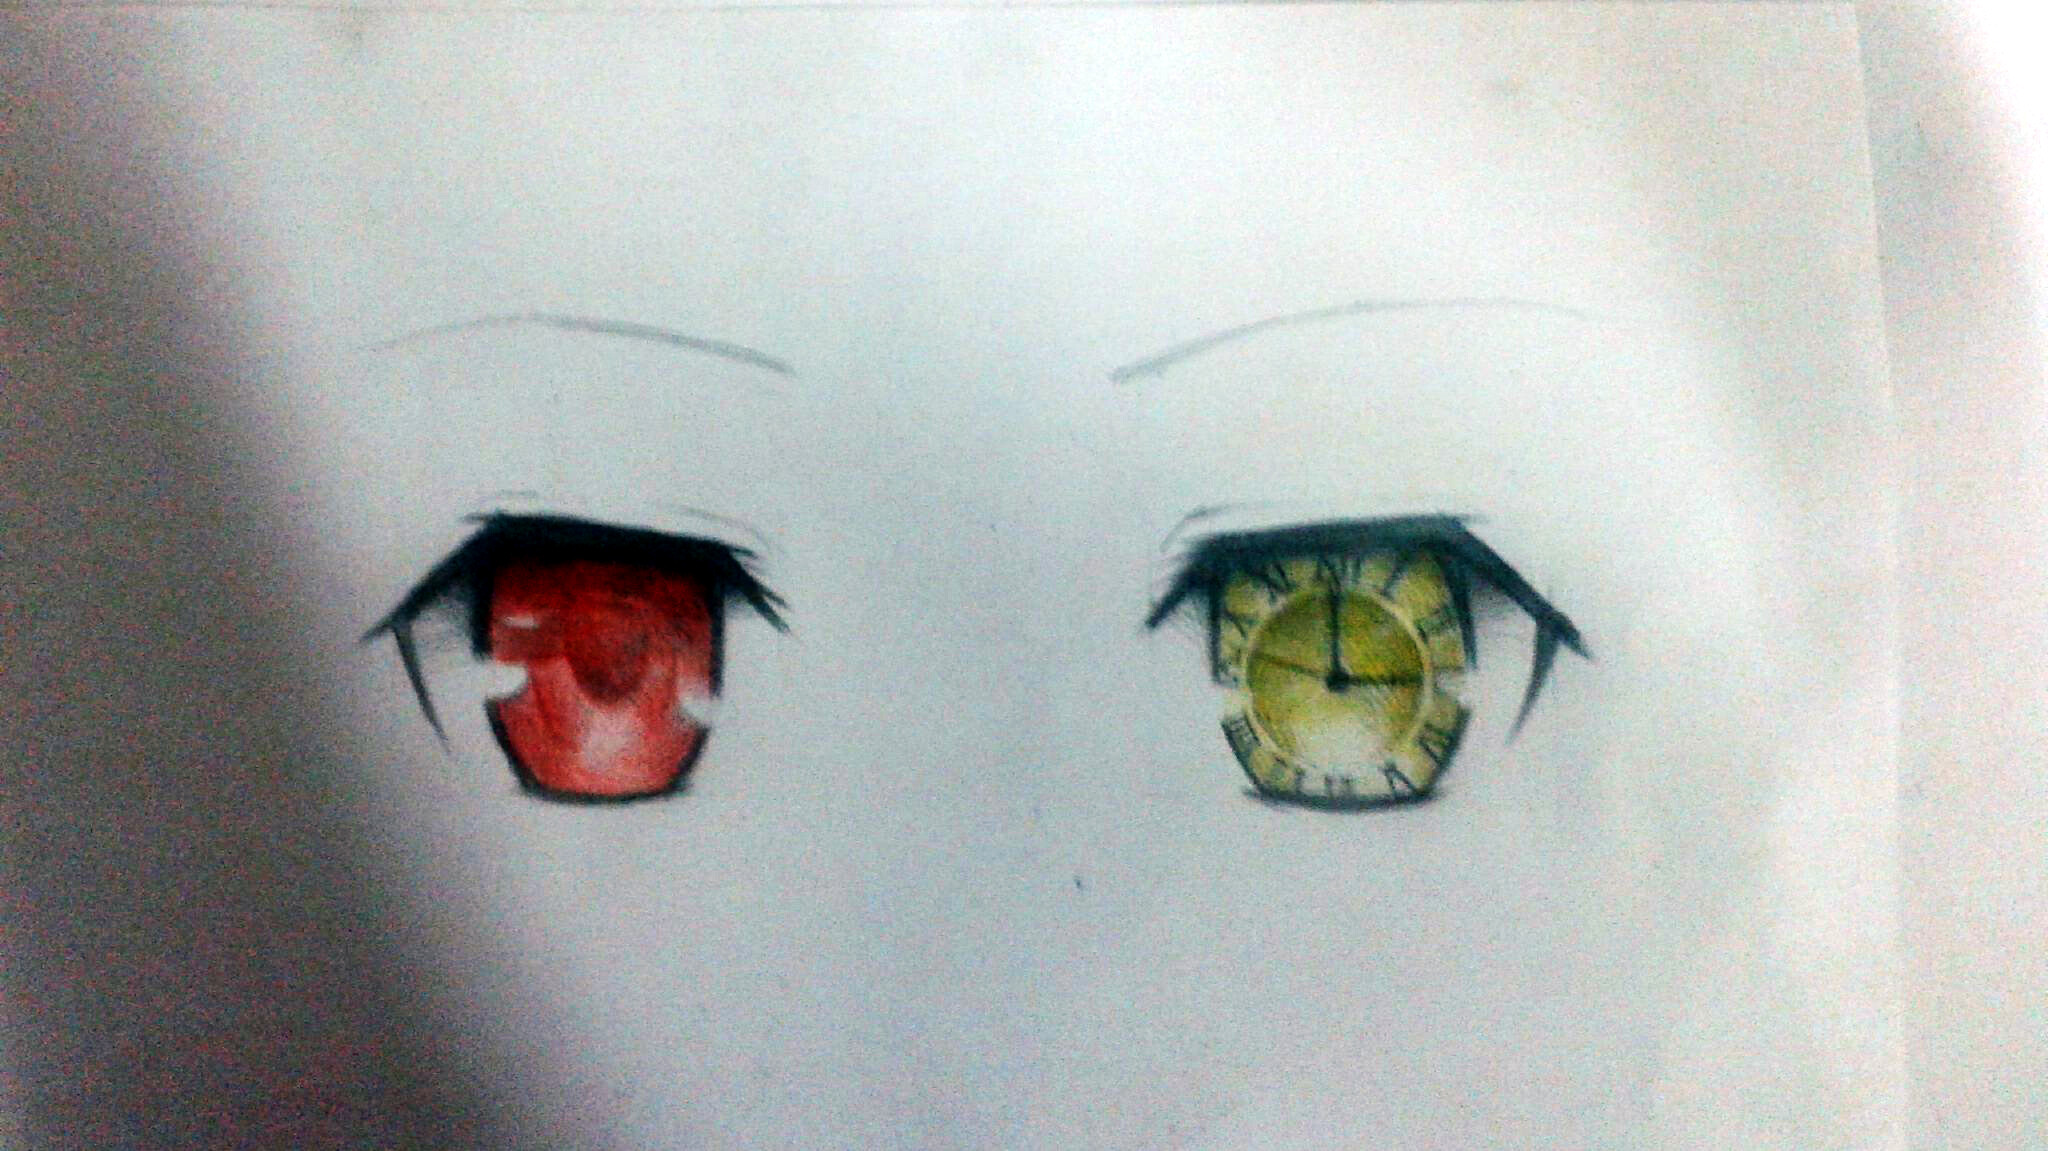 tokisaki kurumis eyes by shinku9 on deviantart